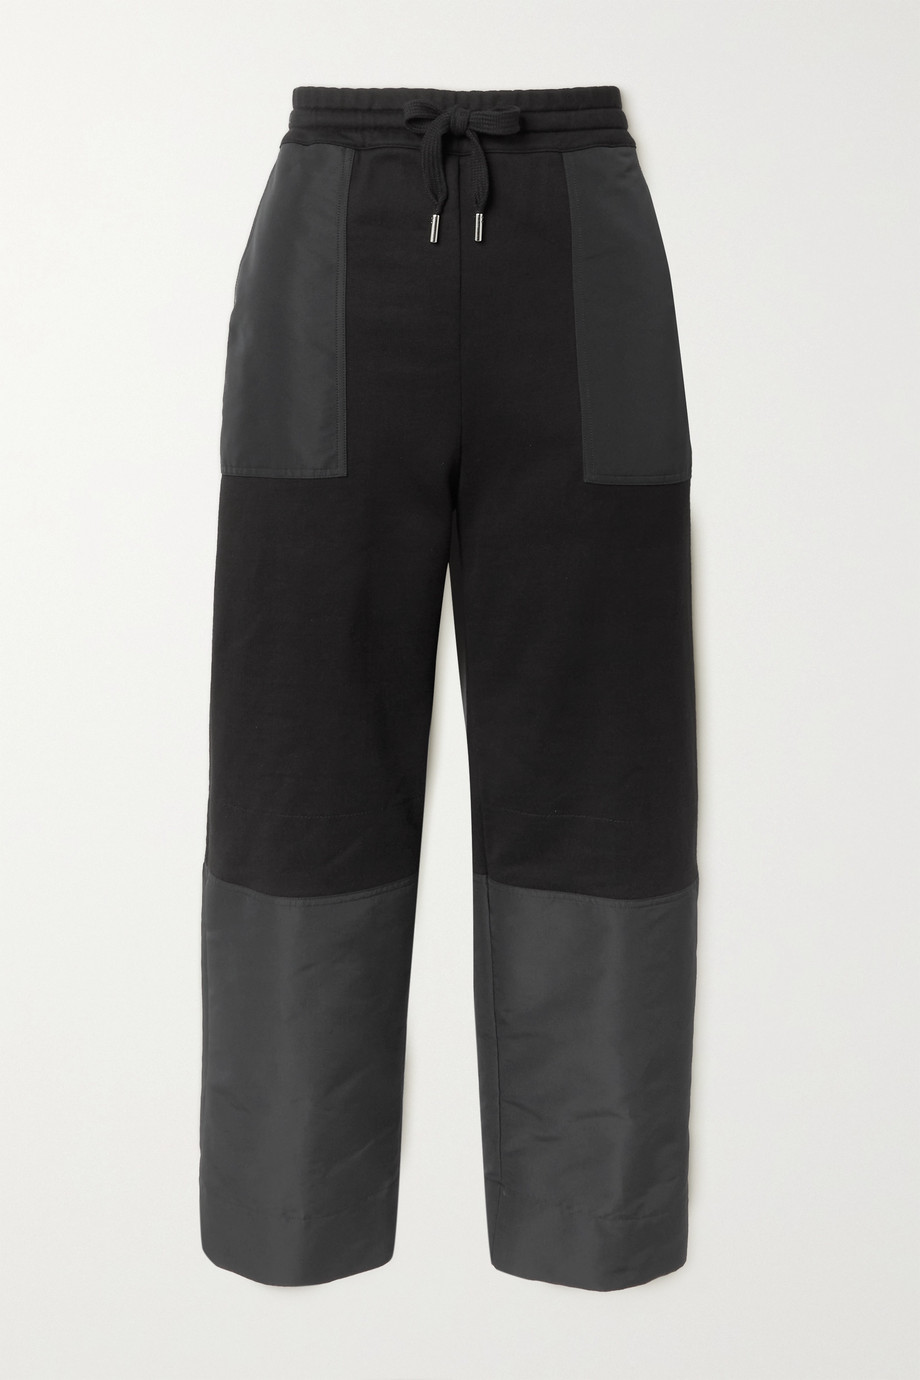 ALEXANDER MCQUEEN Paneled embroidered cotton-jersey and shell track pants